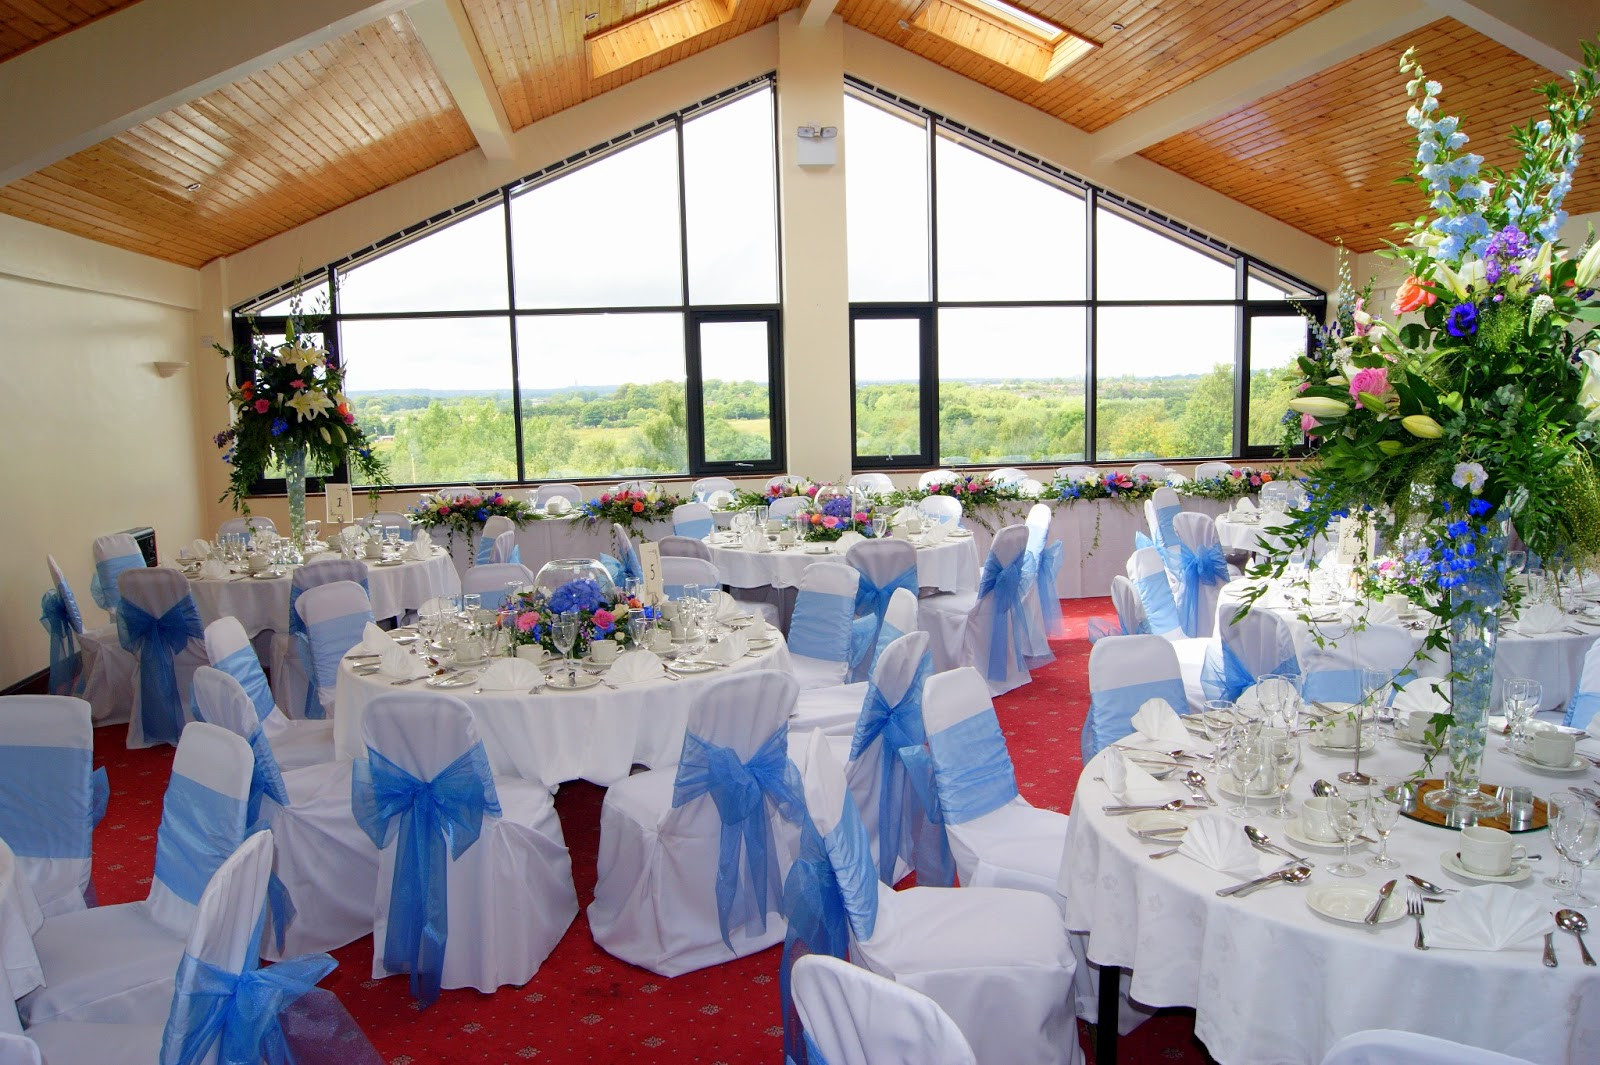 Stylish Outdoor Wedding Reception Venues Near Me 16 Cheap: 14 Surprisingly Affordable UK Wedding Venues